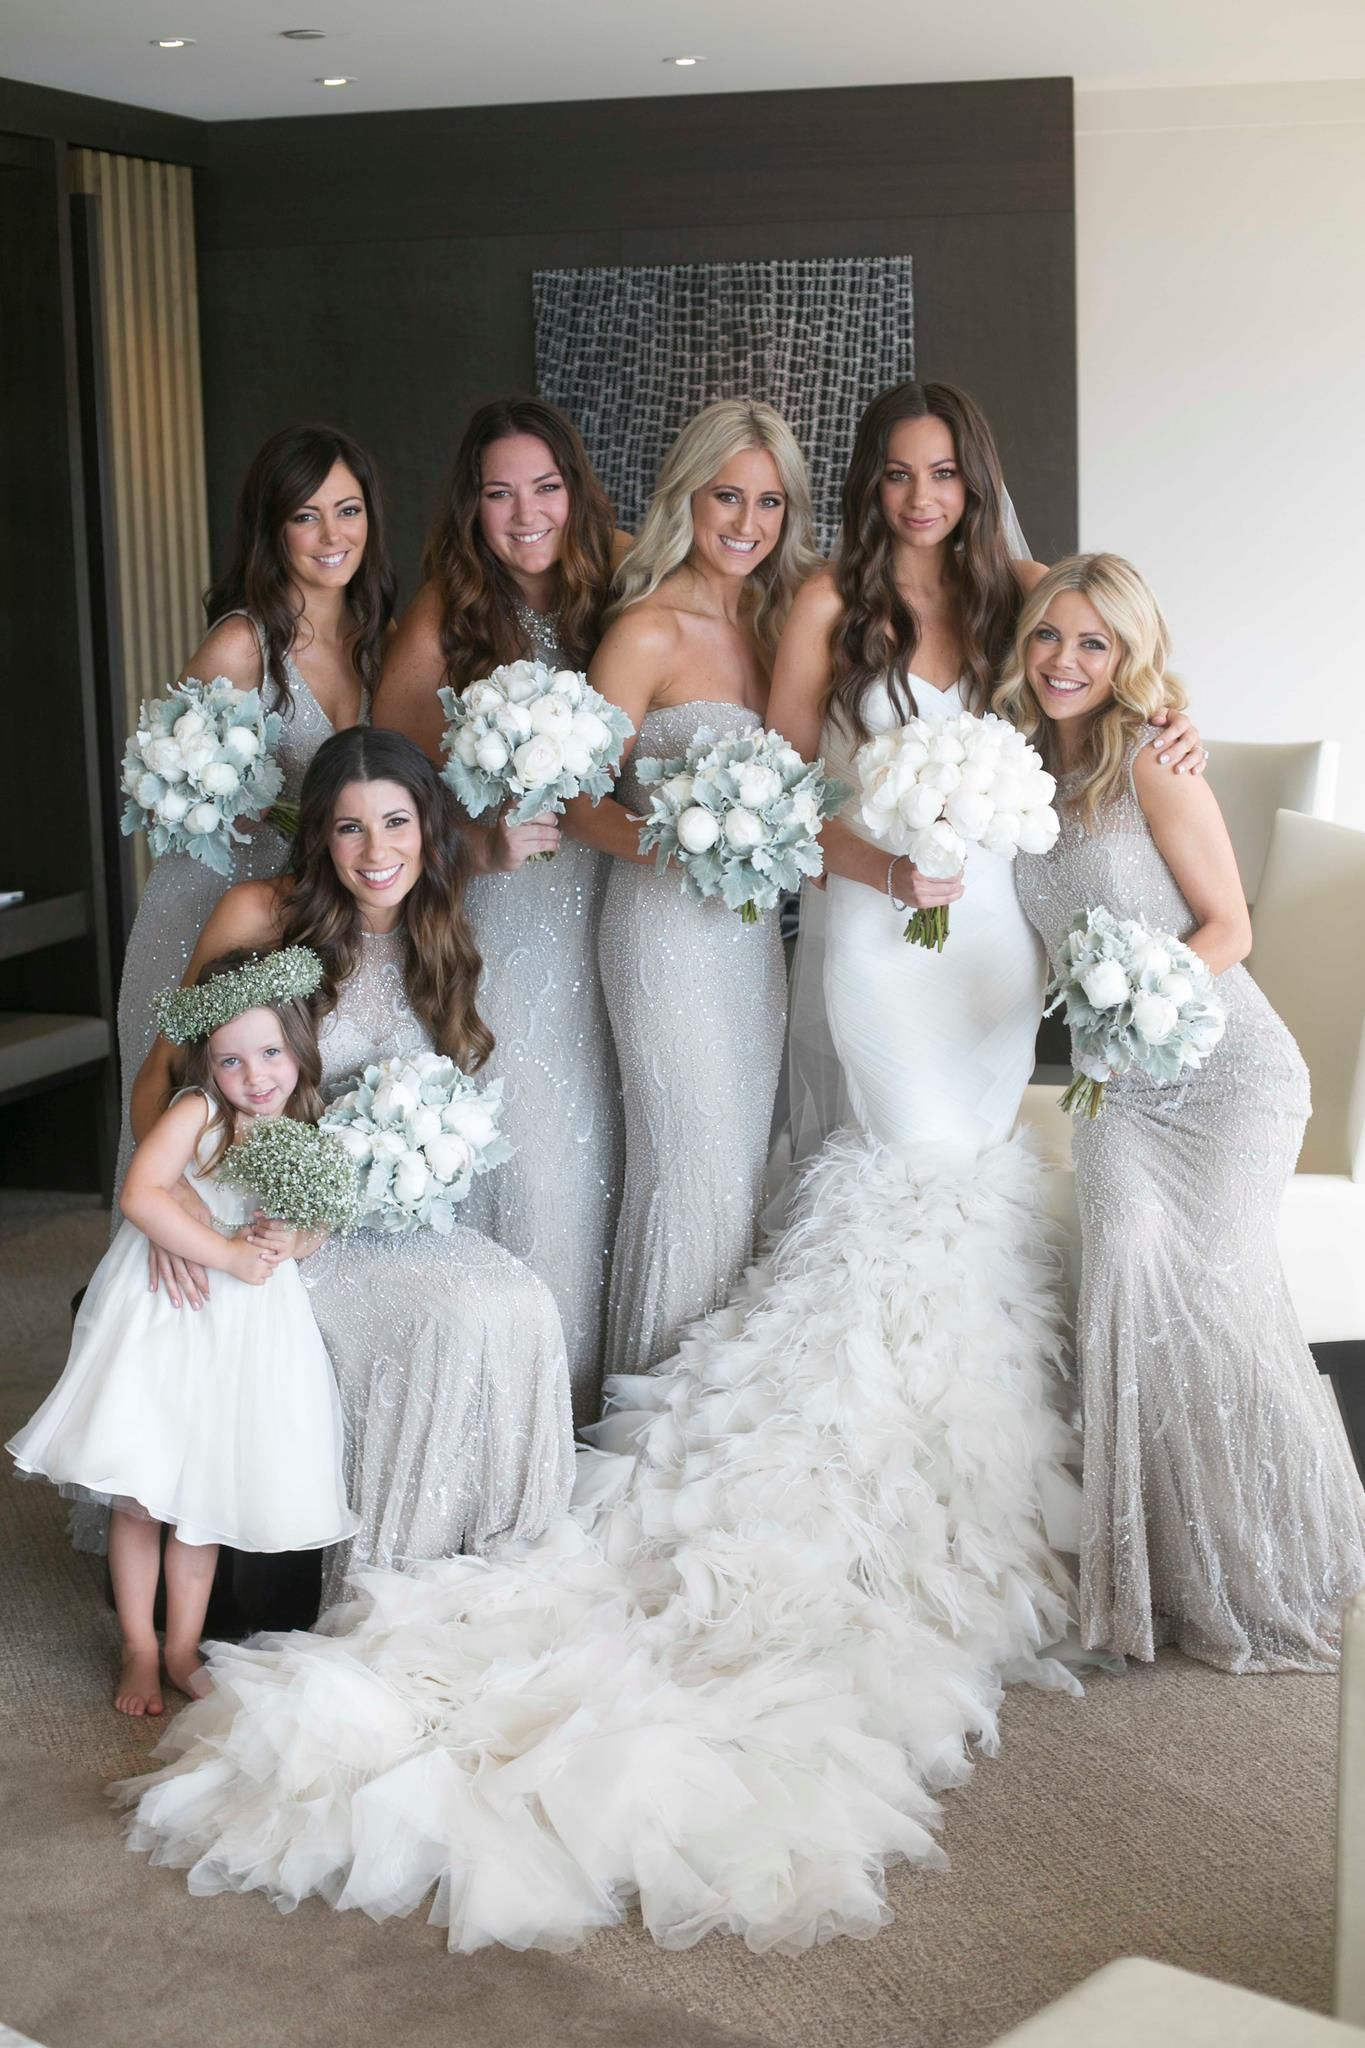 And ice silver bridesmaid dress if it was navy blue and ice silver - Color Inspiration Shining Silver Wedding Ideas